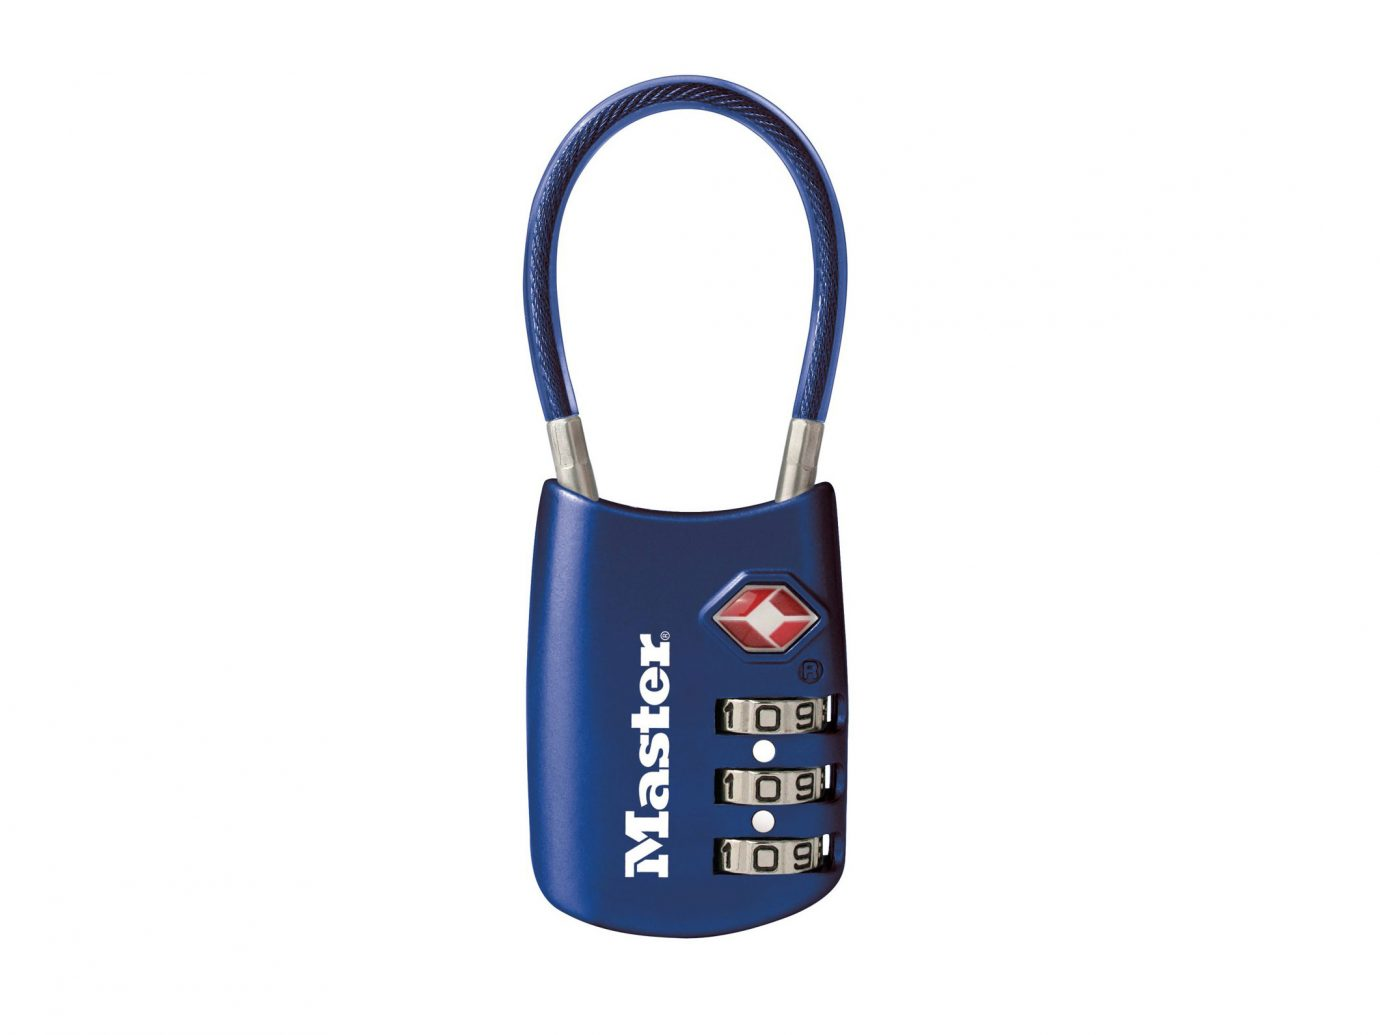 TSA-approved lock: Master Lock